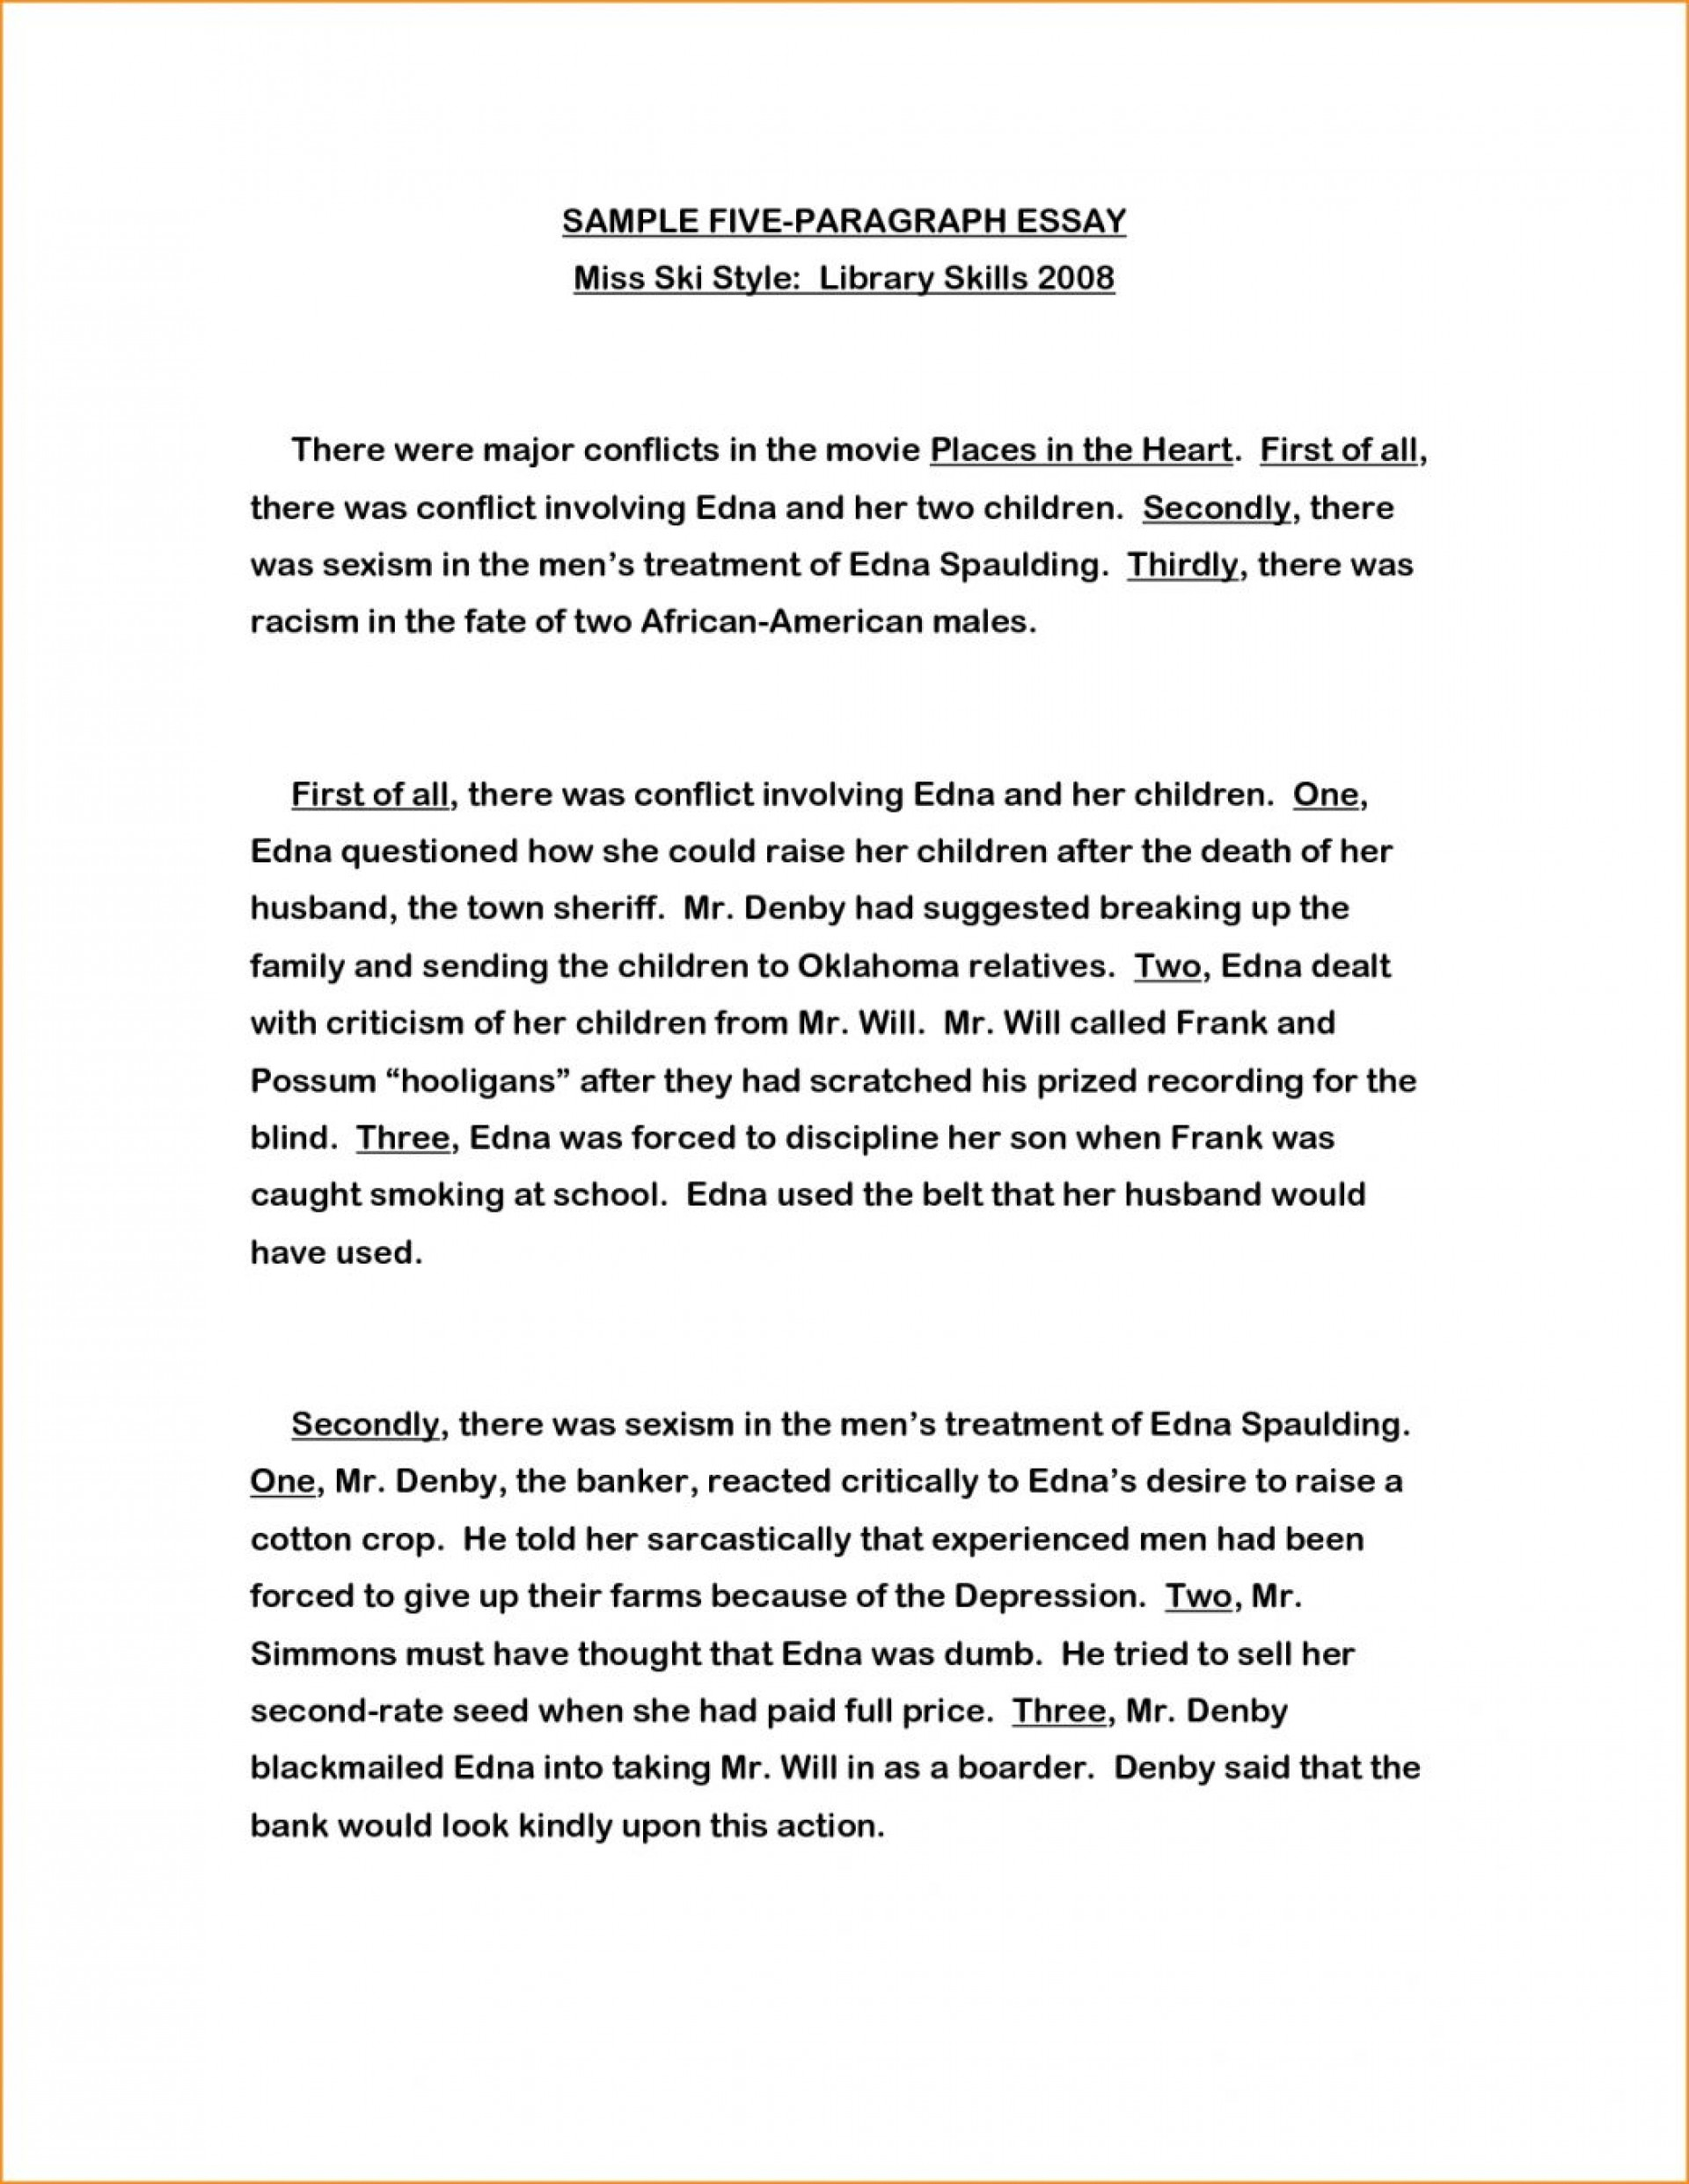 006 Paragraphssayxample For Kids Writings Andssays How To Write Of Oyle Kalakaari Opinion Body Argumentative Persuasive Format Outline About Yourself 1048x1355 First An Awful Paragraph Essay Apa Should You Indent The Is Called 1920